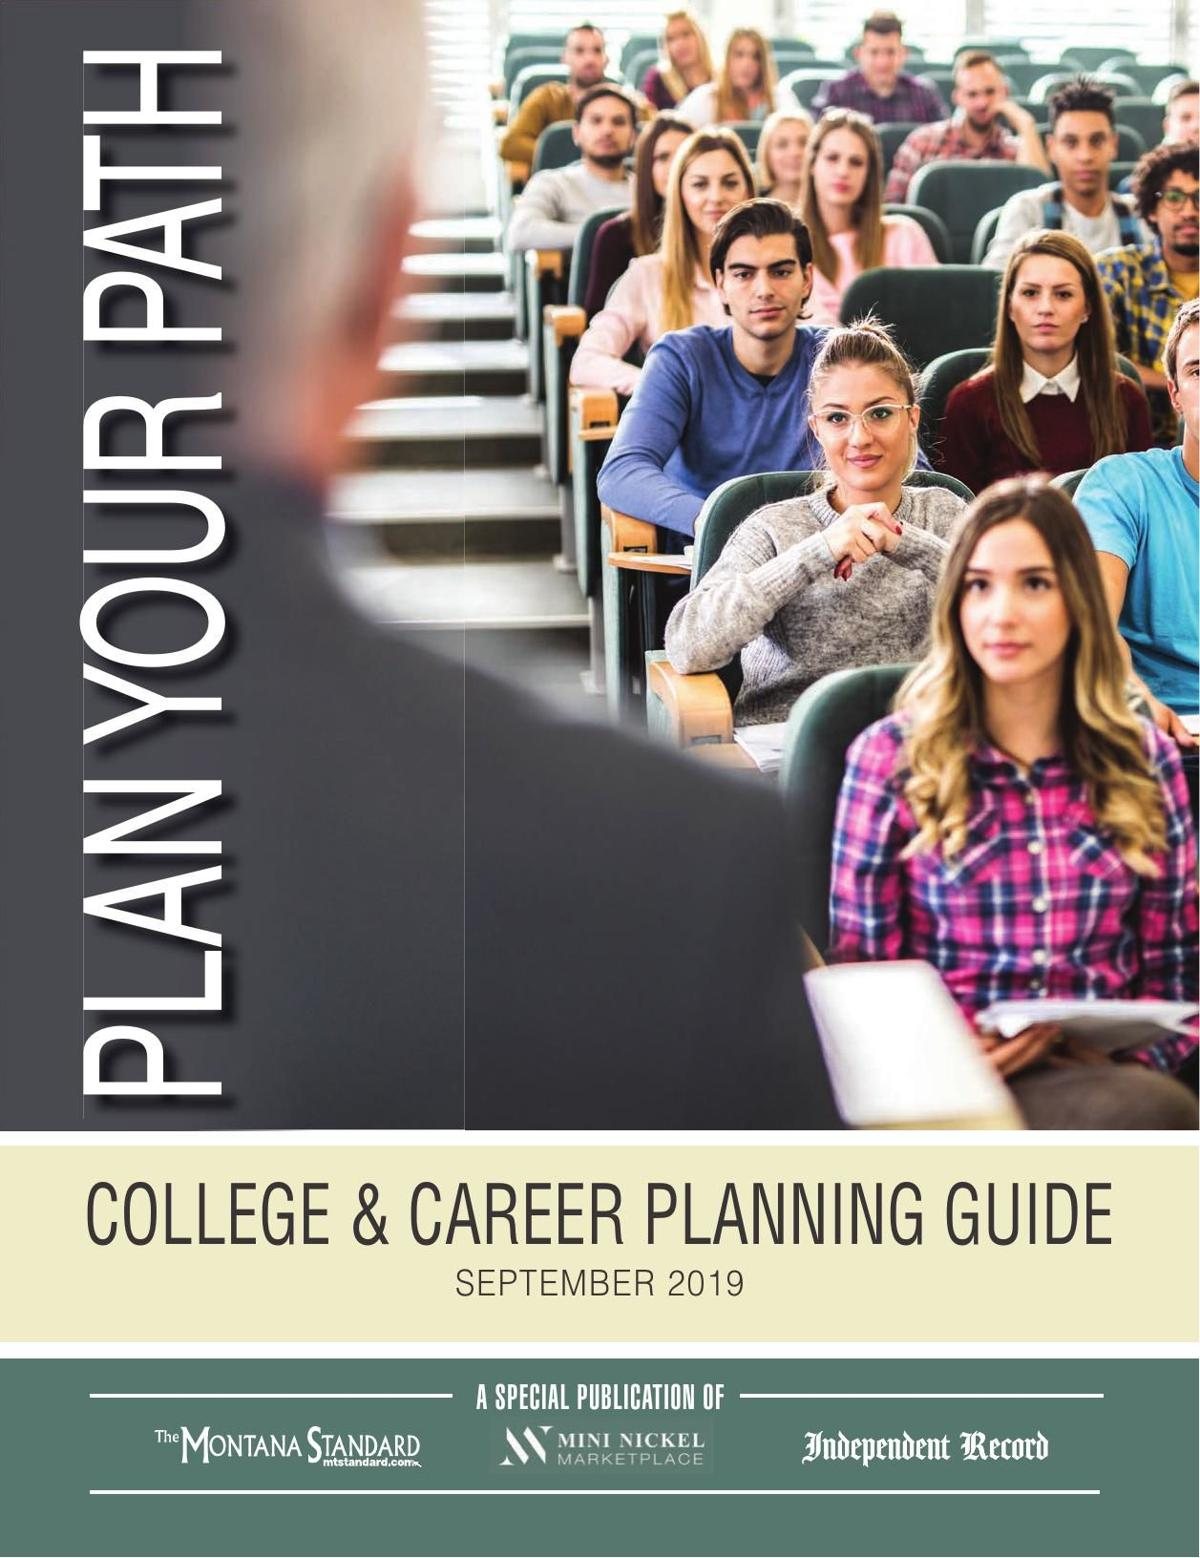 Plan Your Path - College & Career Planning Guide